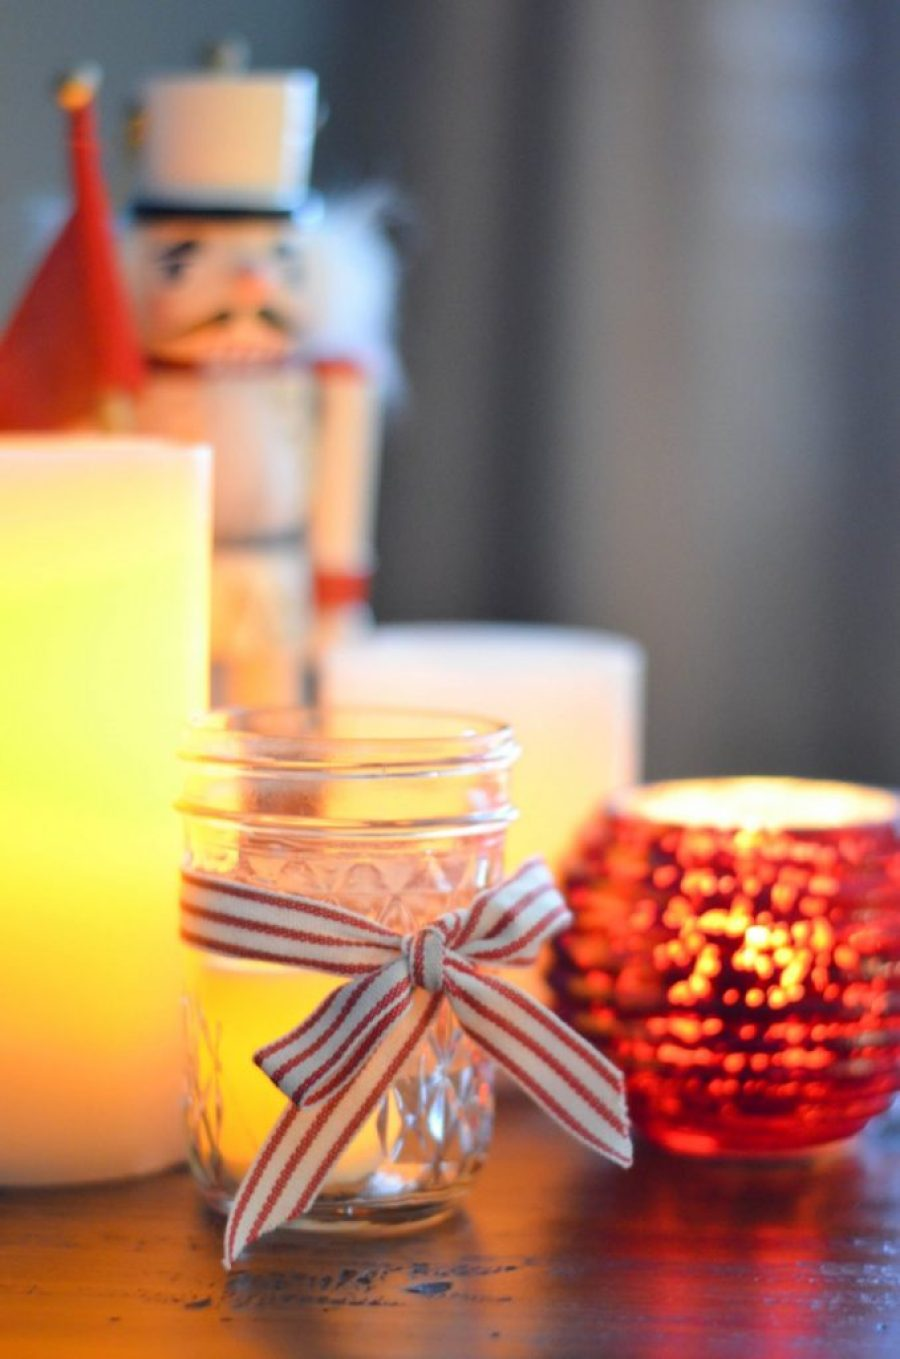 Flameless Candles to light the holiday season.